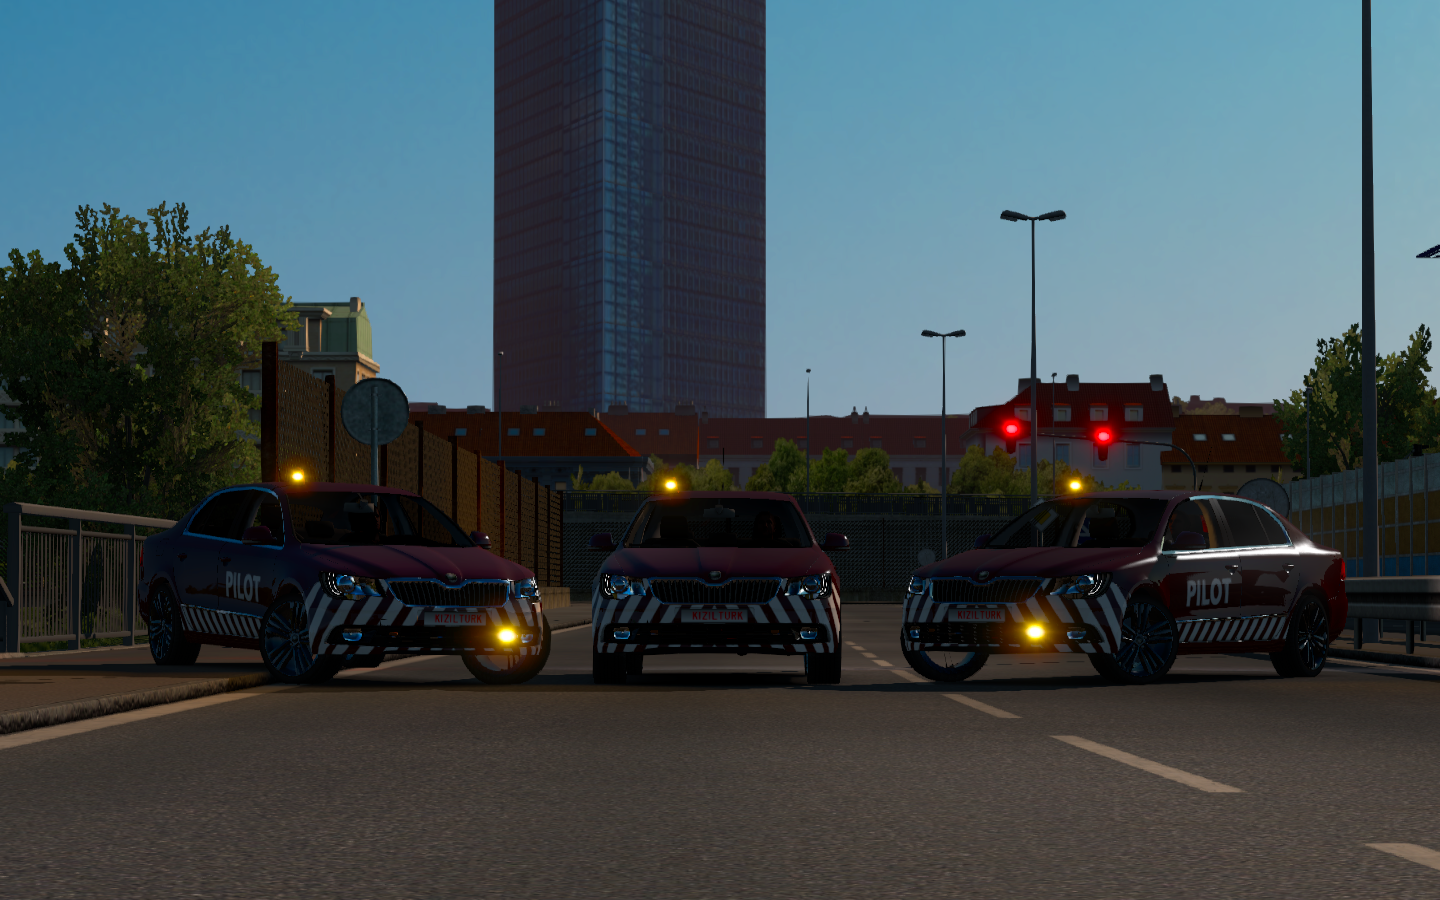 ets2_20181117_173942_00.png